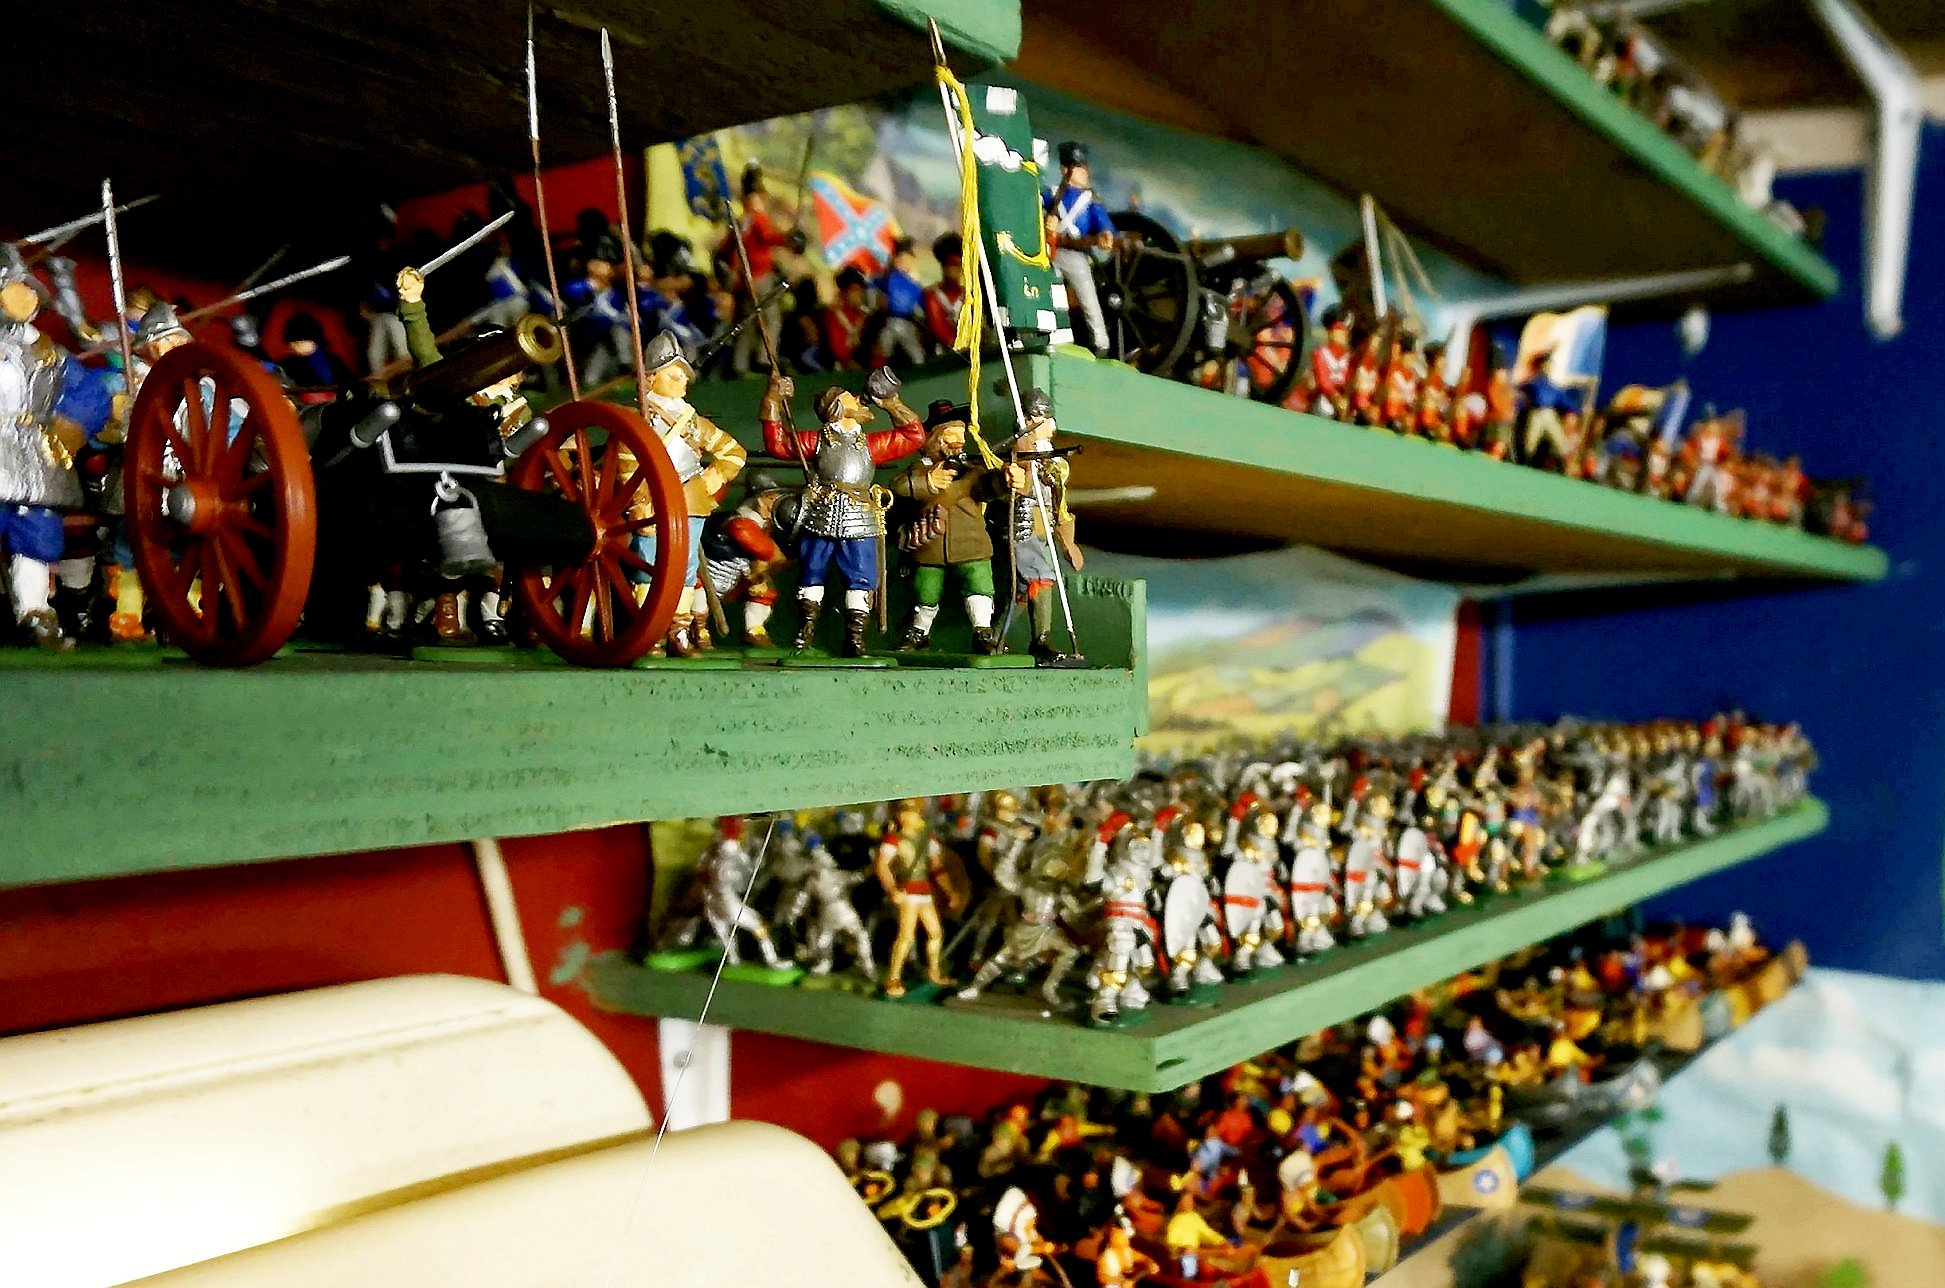 An epic collection of around 250,000 toy soldiers ? collected in a Bristol garage over a lifetime by an enthusiast ? is to go under the hammer. See SWNS story SWSOLDIERS; The collection which filled a double garage in Brislington belonged to a 55 year-old Carmelo Mazzotta who sadly passed away after a battle with leukaemia. Mr Mazzotta had been collecting the toy soldiers since he was eight years old. The collection, some of which was displayed in their individual regiments in the garage, is understood to be the biggest in the world ever to go to auction. The tiny figures are made out of a variety of materials, including lead, metal and plastic. Alongside the soldiers, the collection also features a variety of accessories from miniature forts and weapons to trees and military vehicles. Most of the soldiers stand between one inch and two inches tall, although some of the figures are larger.